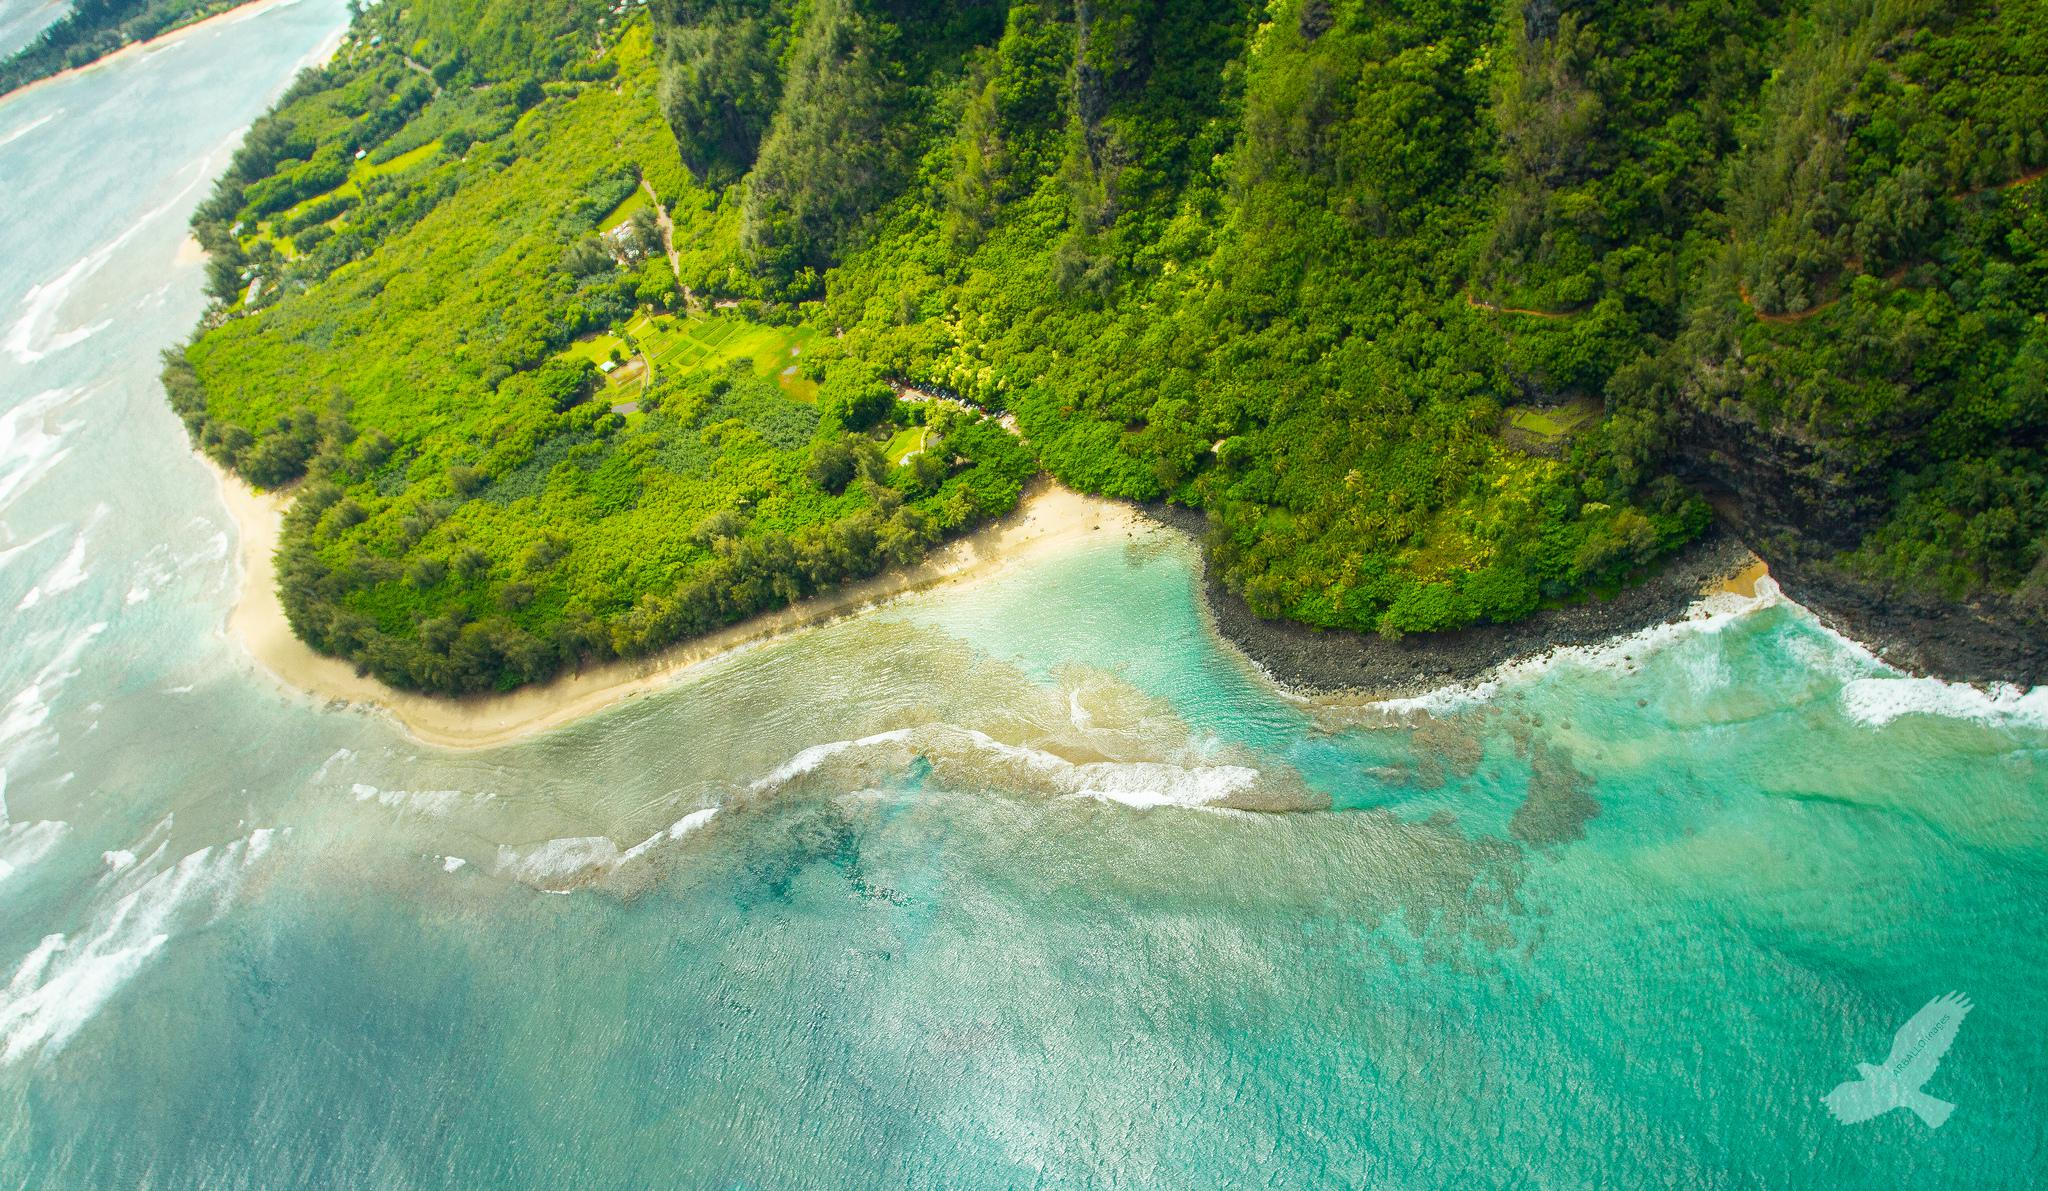 "Kauai North Shore<br />Photo <a href=""//creativecommons.org/licences/by-nc/3.0/"" class=""cc-small"" target=""_blank""><img typeof=""foaf:Image"" class=""image-style-none"" src=""//i.creativecommons.org/l/by-nc/3.0/80x15.png"" width=""80px"" height=""15px"" alt=""Creative Commons Licence"" /></a> <a href=""http://www.flickr.com/photos/91355793@N02/9094763707"">Christian Arballo</a>"